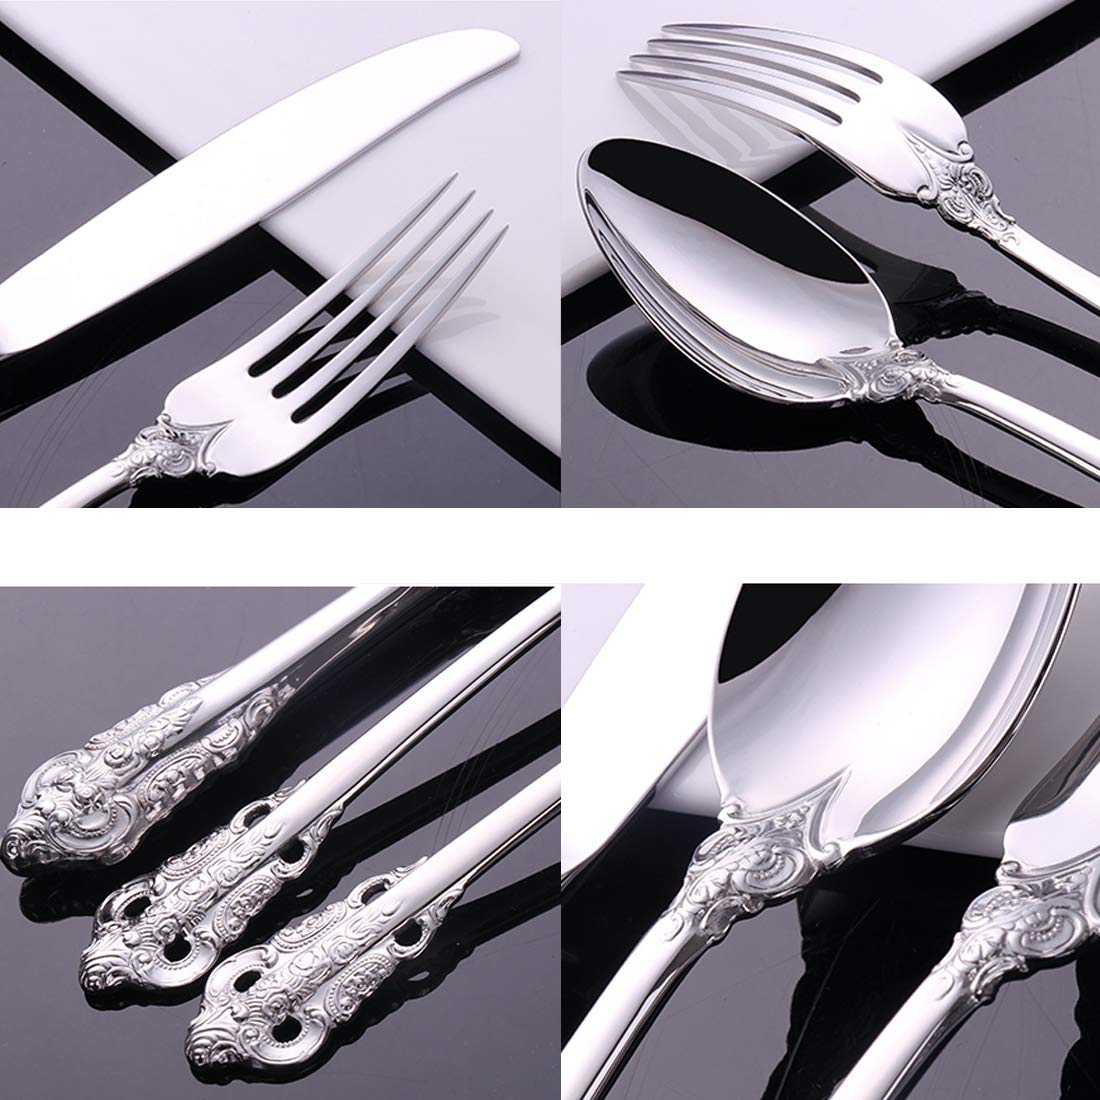 Classic Silver Cutlery Set Stainless Steel Flatware Set Mirror Polish Dinnerware Fork Knife Spoon Durable Stain and Fade Resistant Silverware Wedding Gift 4 Pieces